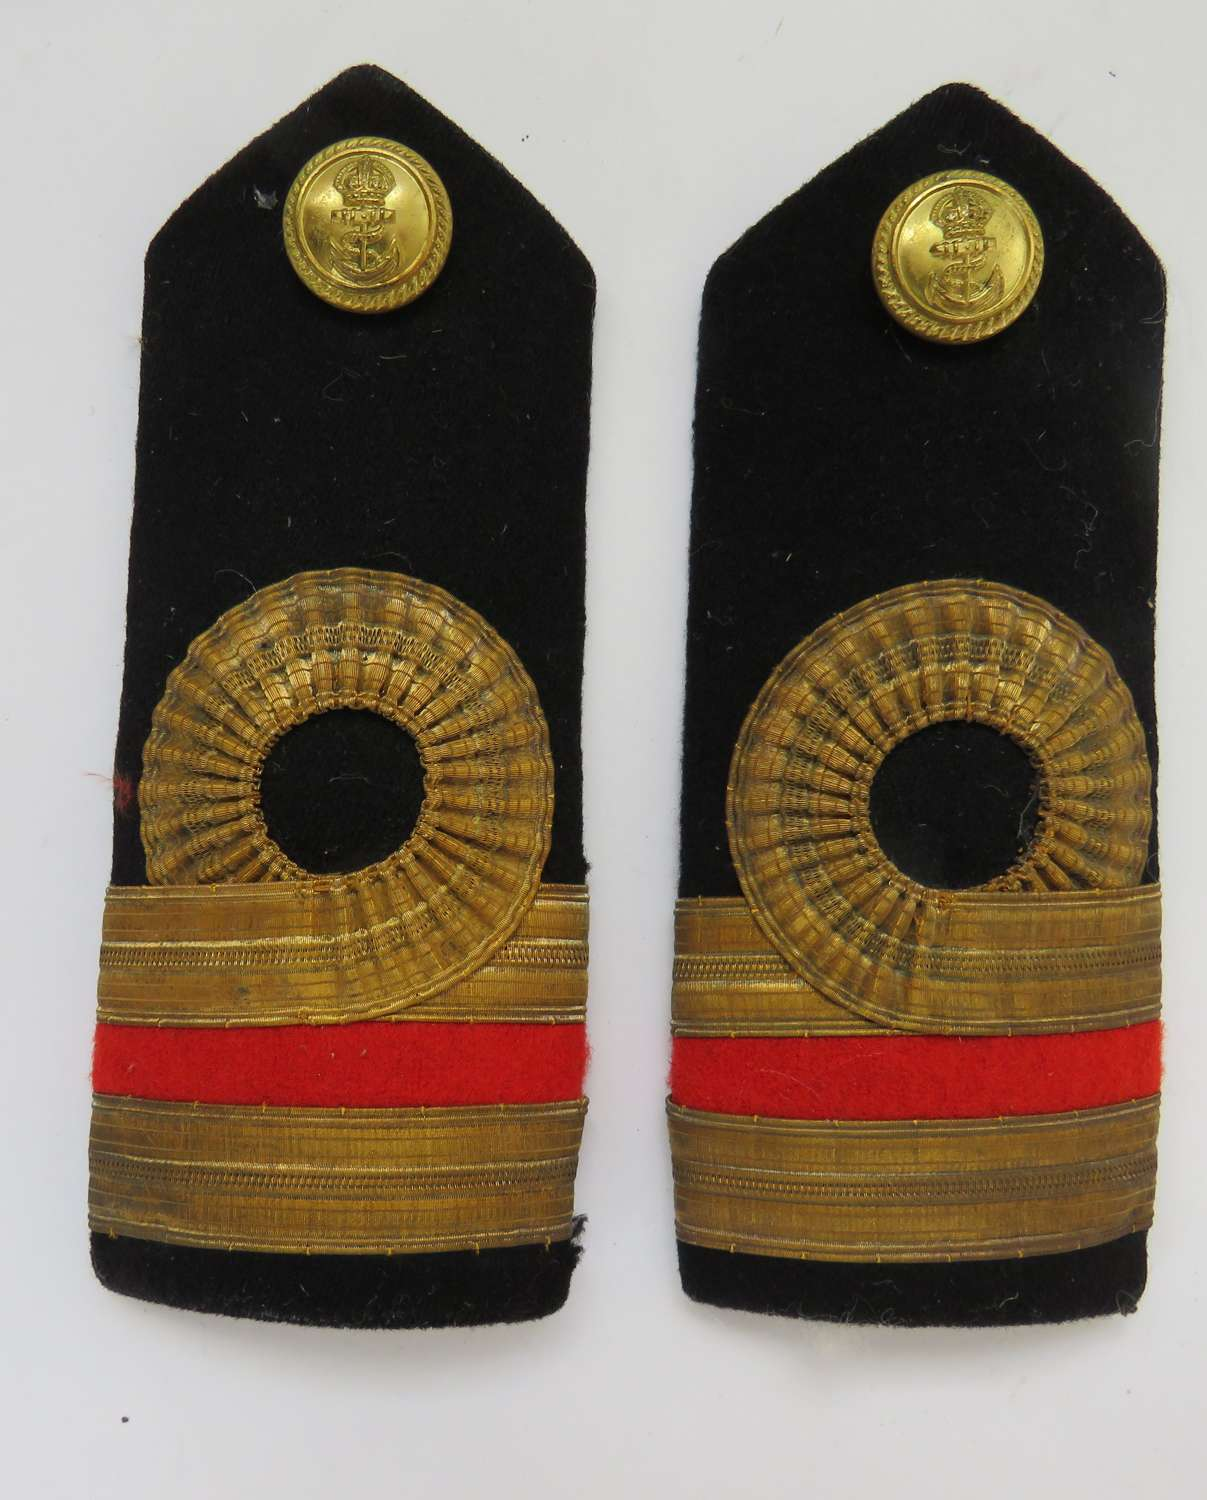 Pair of Surgeon Naval Officers Shoulder Straps